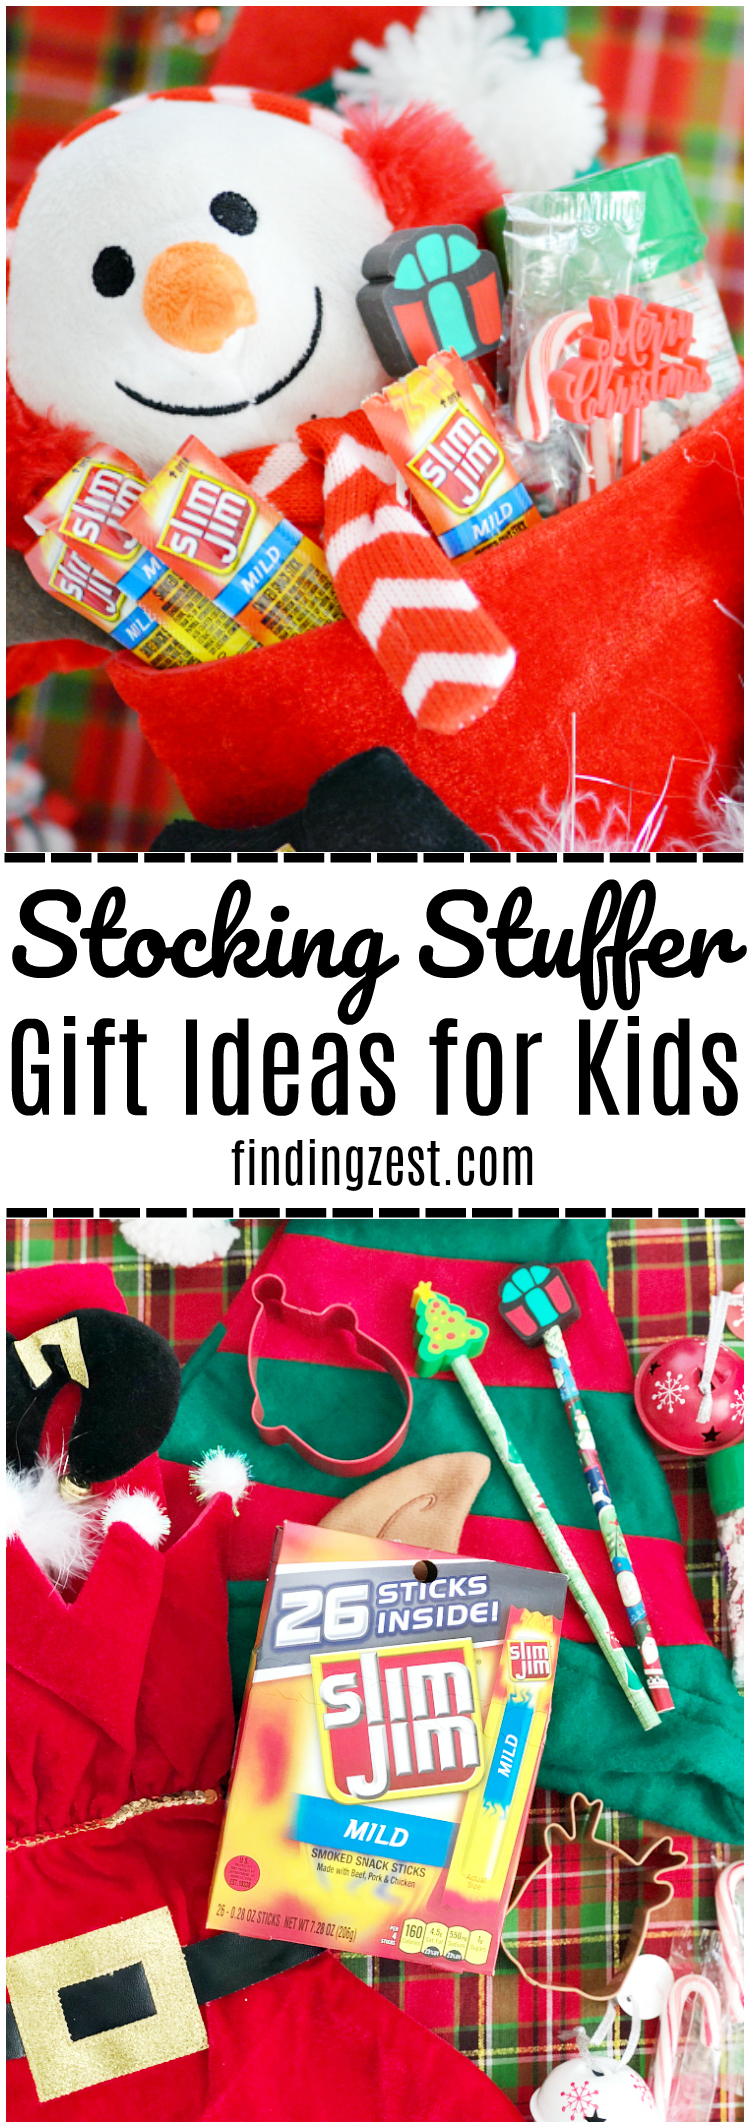 Don't get stumped this holiday season! Check out these easy stocking stuffer gift ideas for kids!